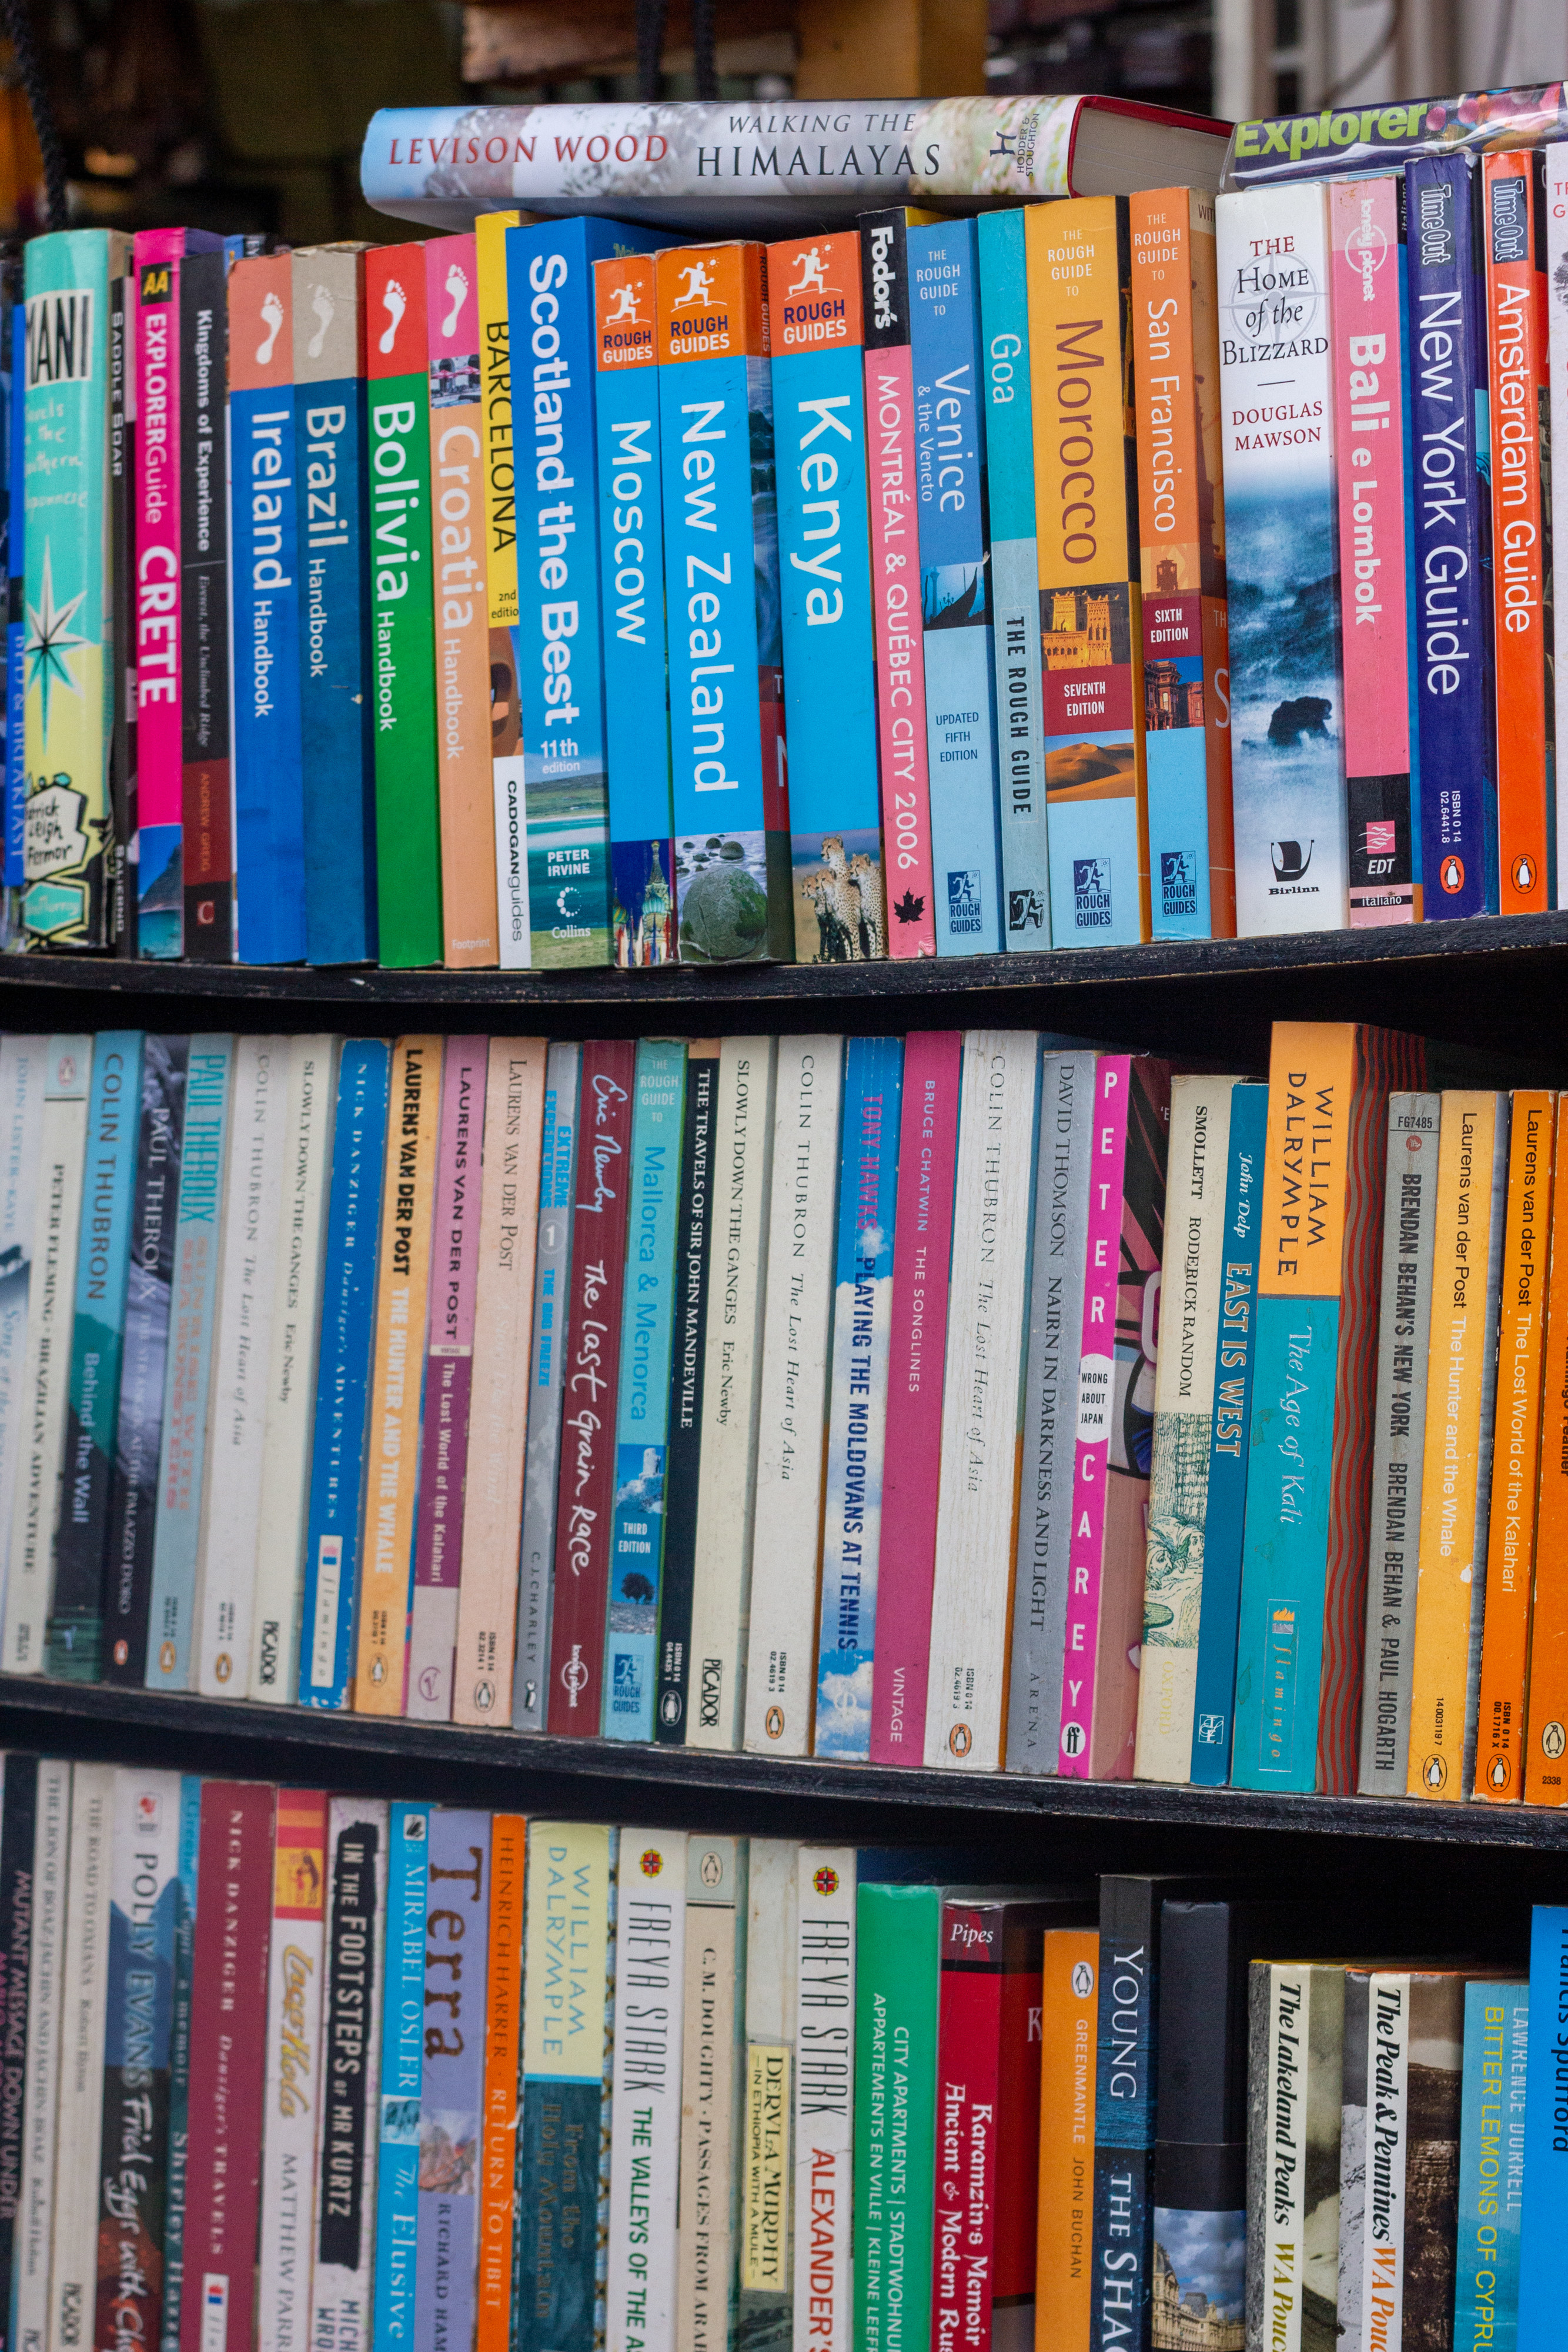 Travel books and guides arranged in a library